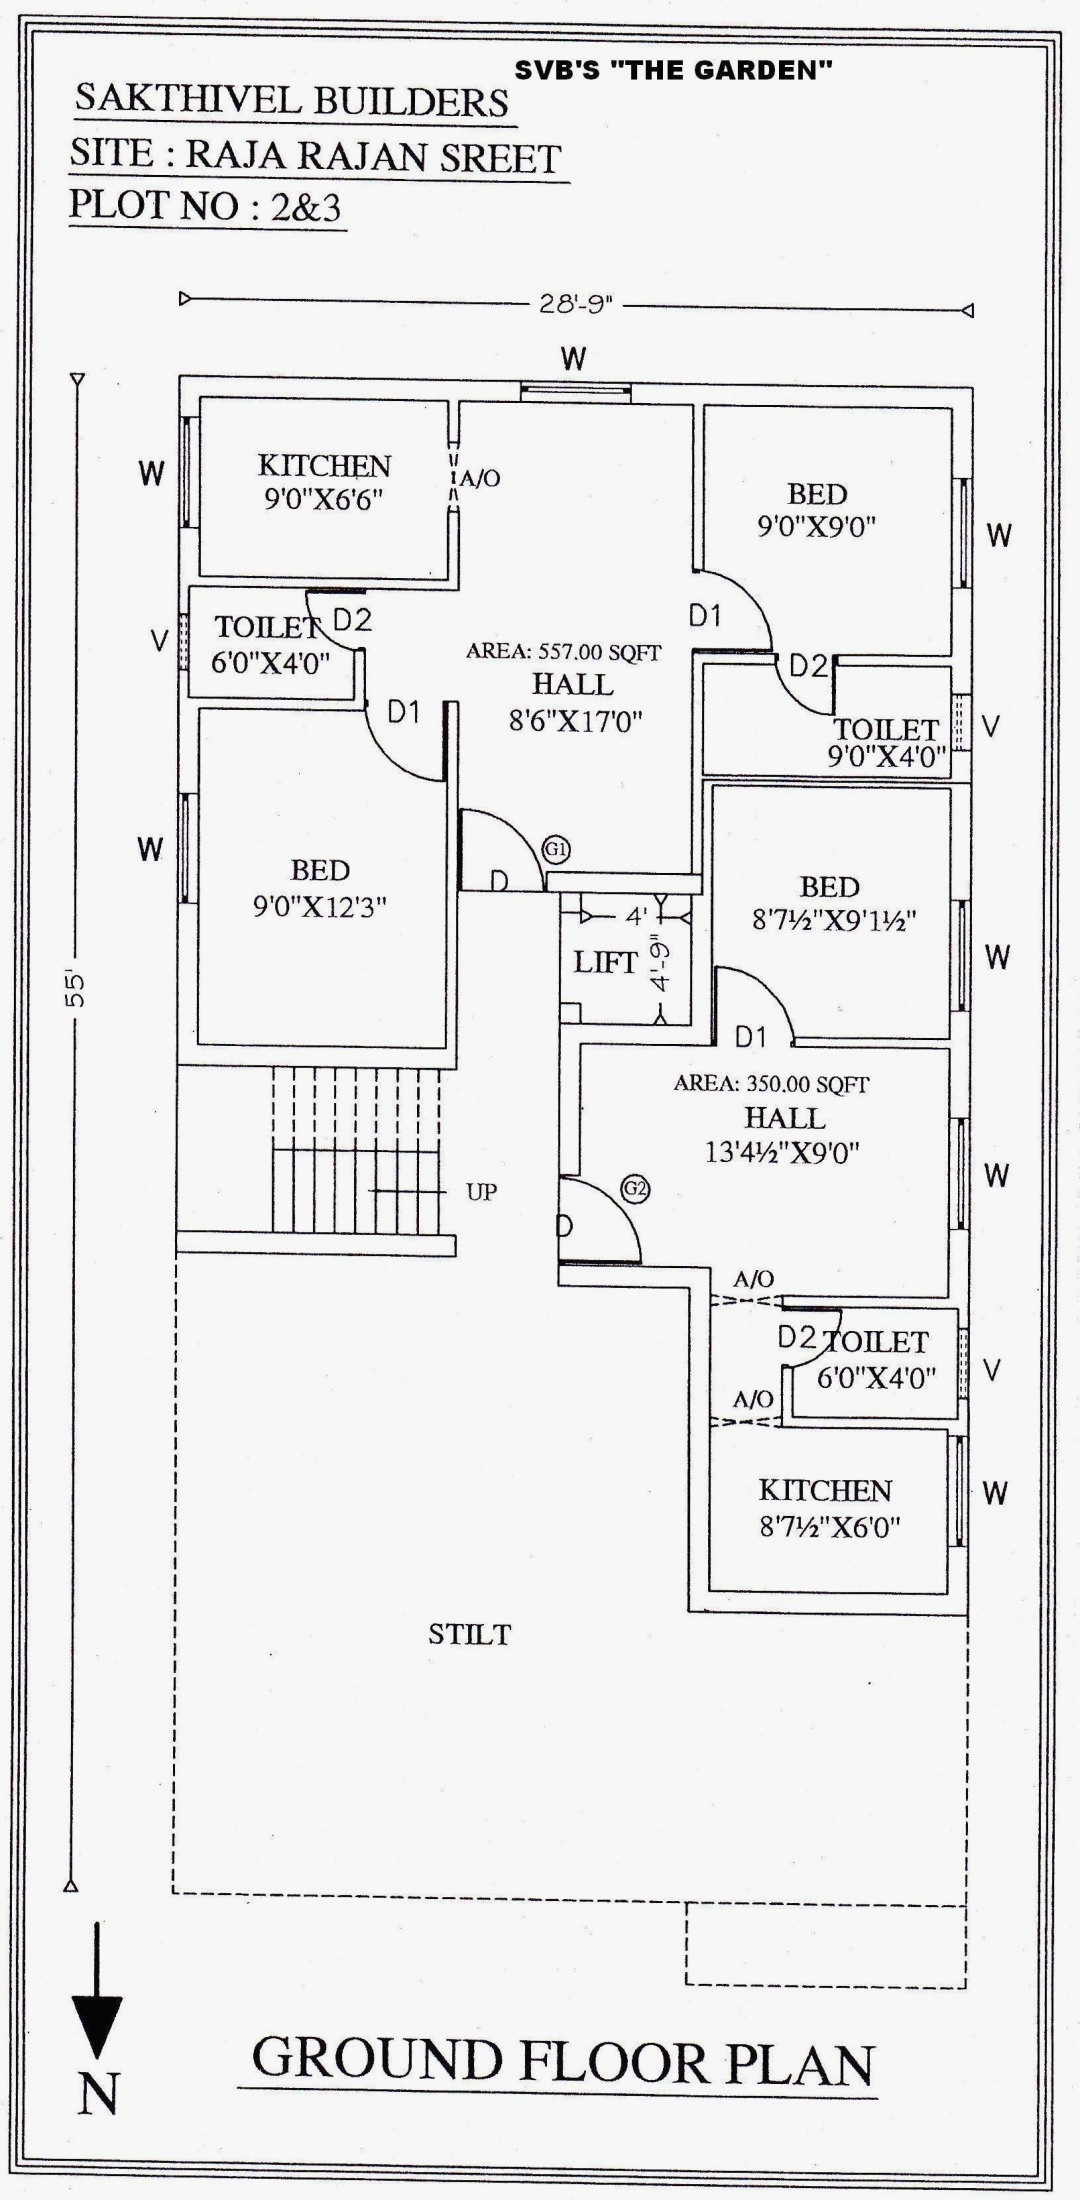 autocad house drawings samples dwg awesome autocad house plan tutorial drawing samples free of autocad house drawings samples dwg